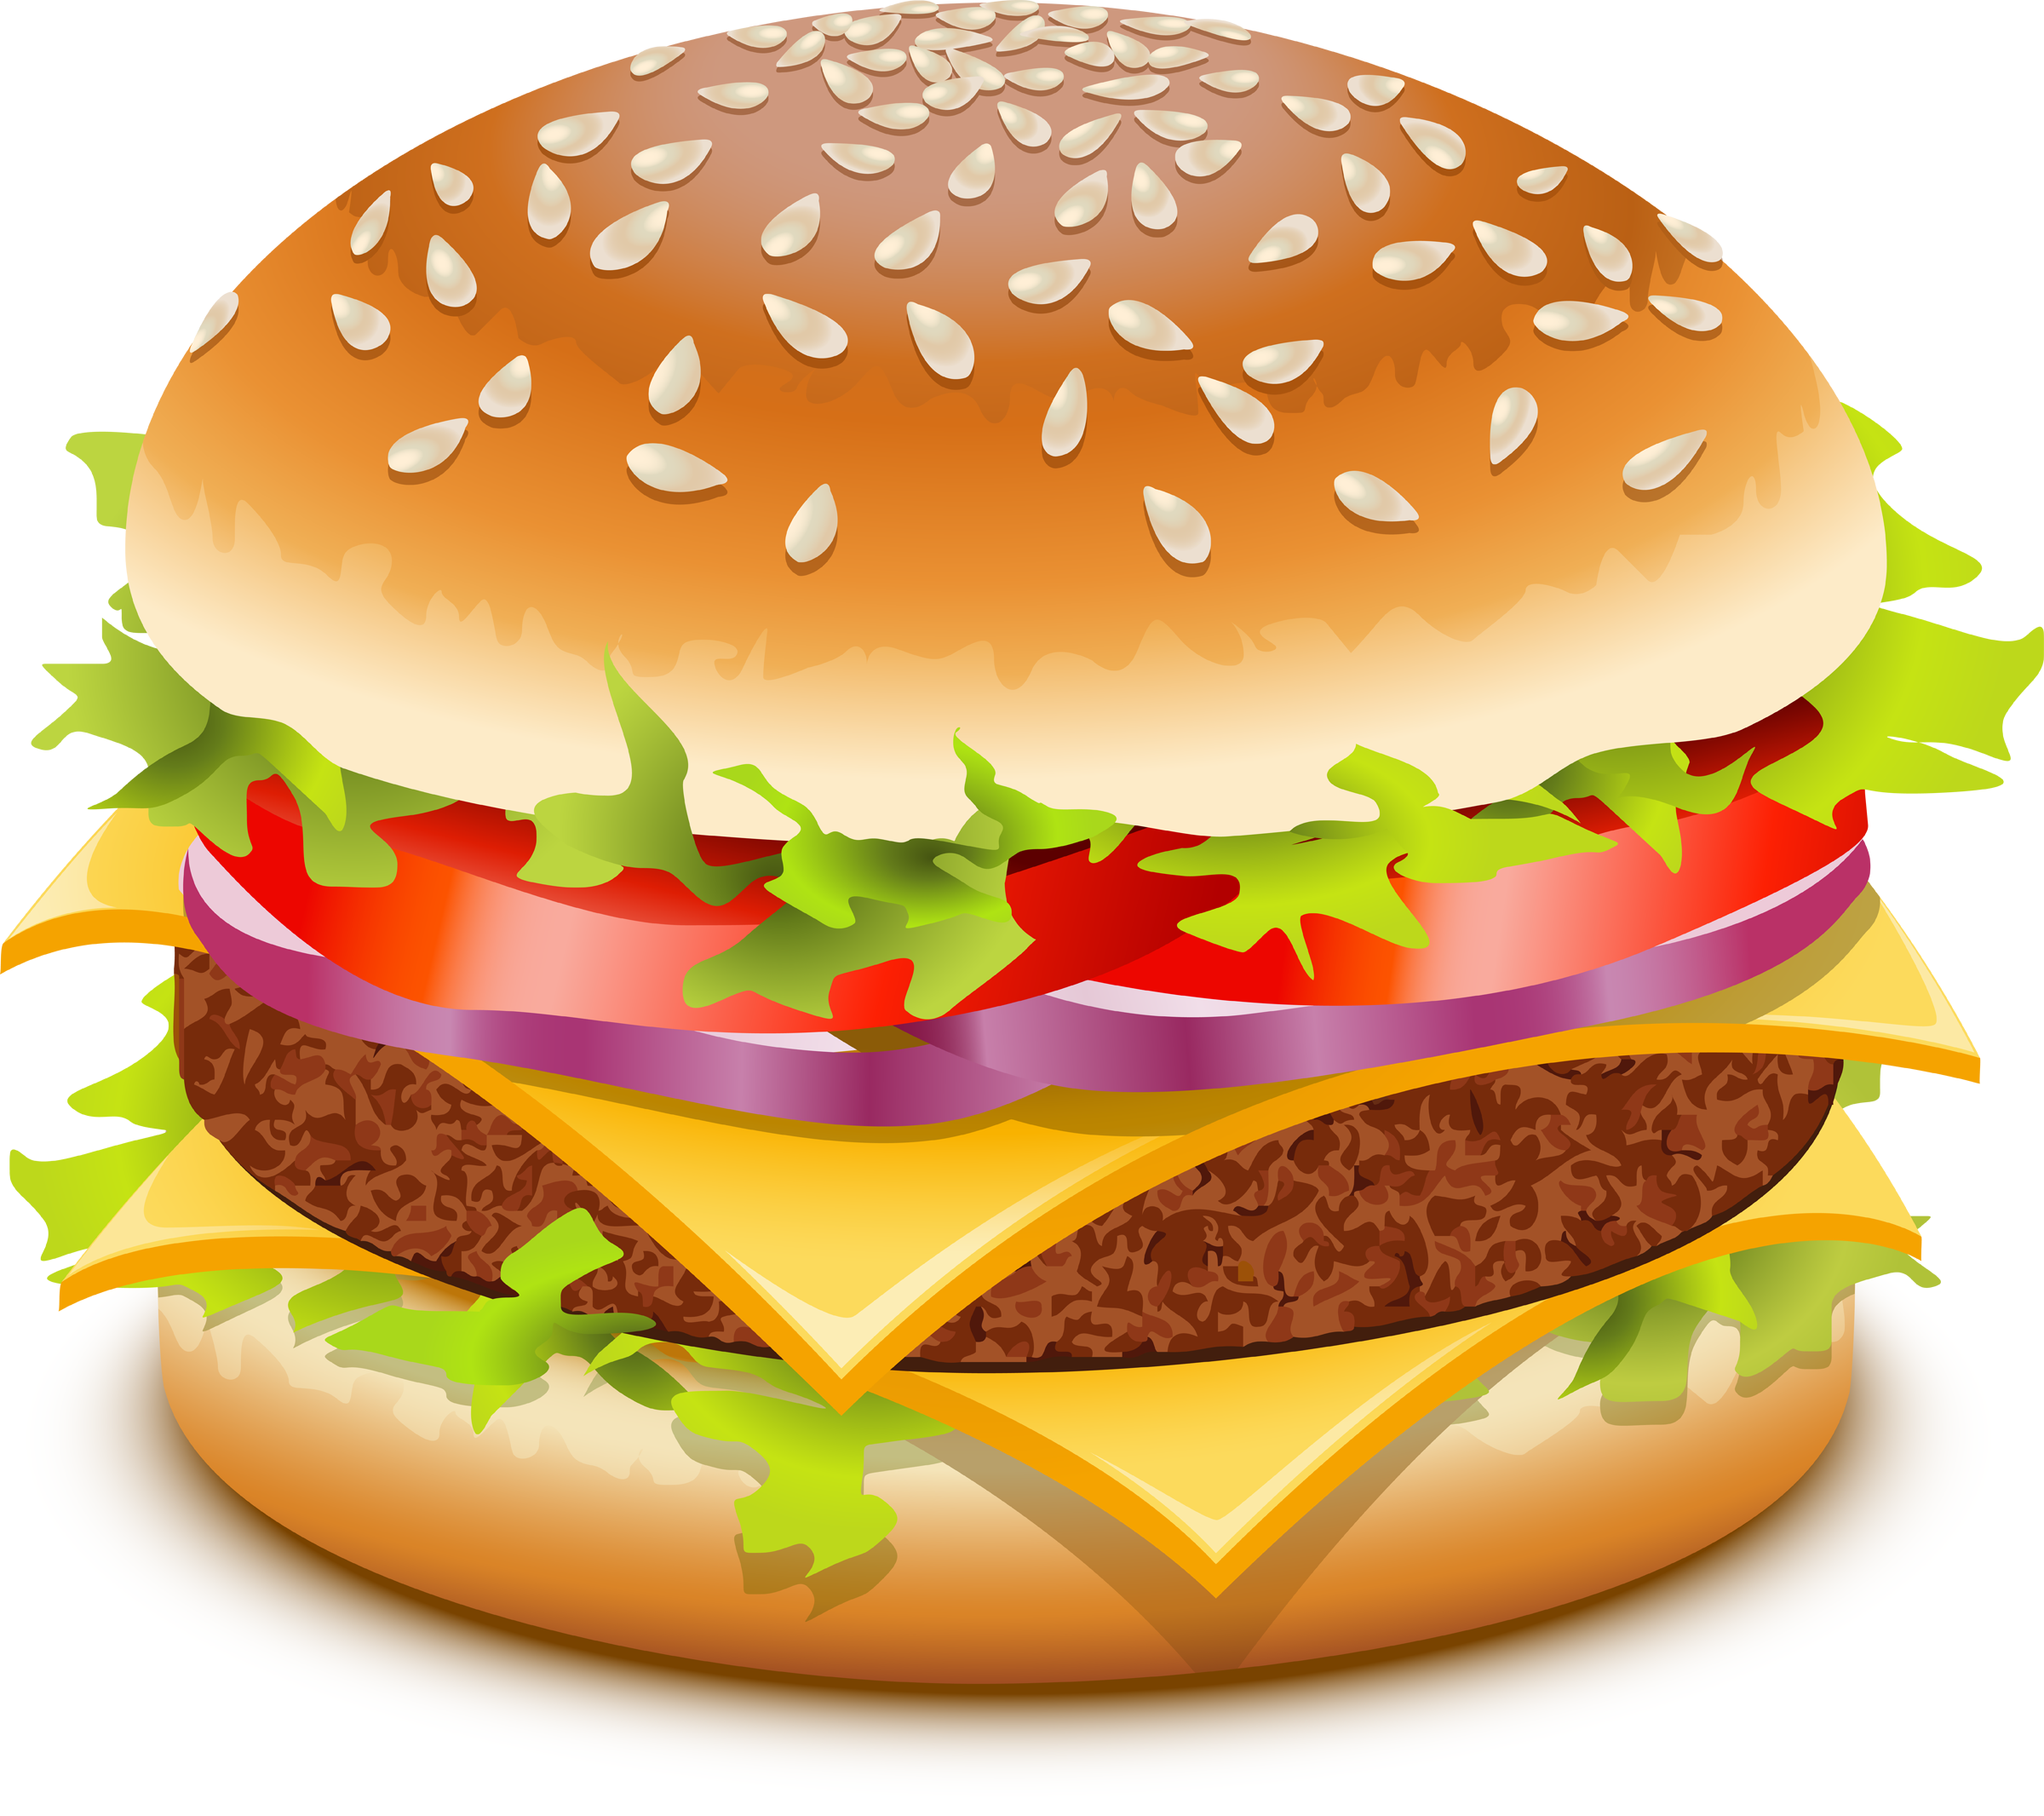 And sandwich png images. Meal clipart burger meal